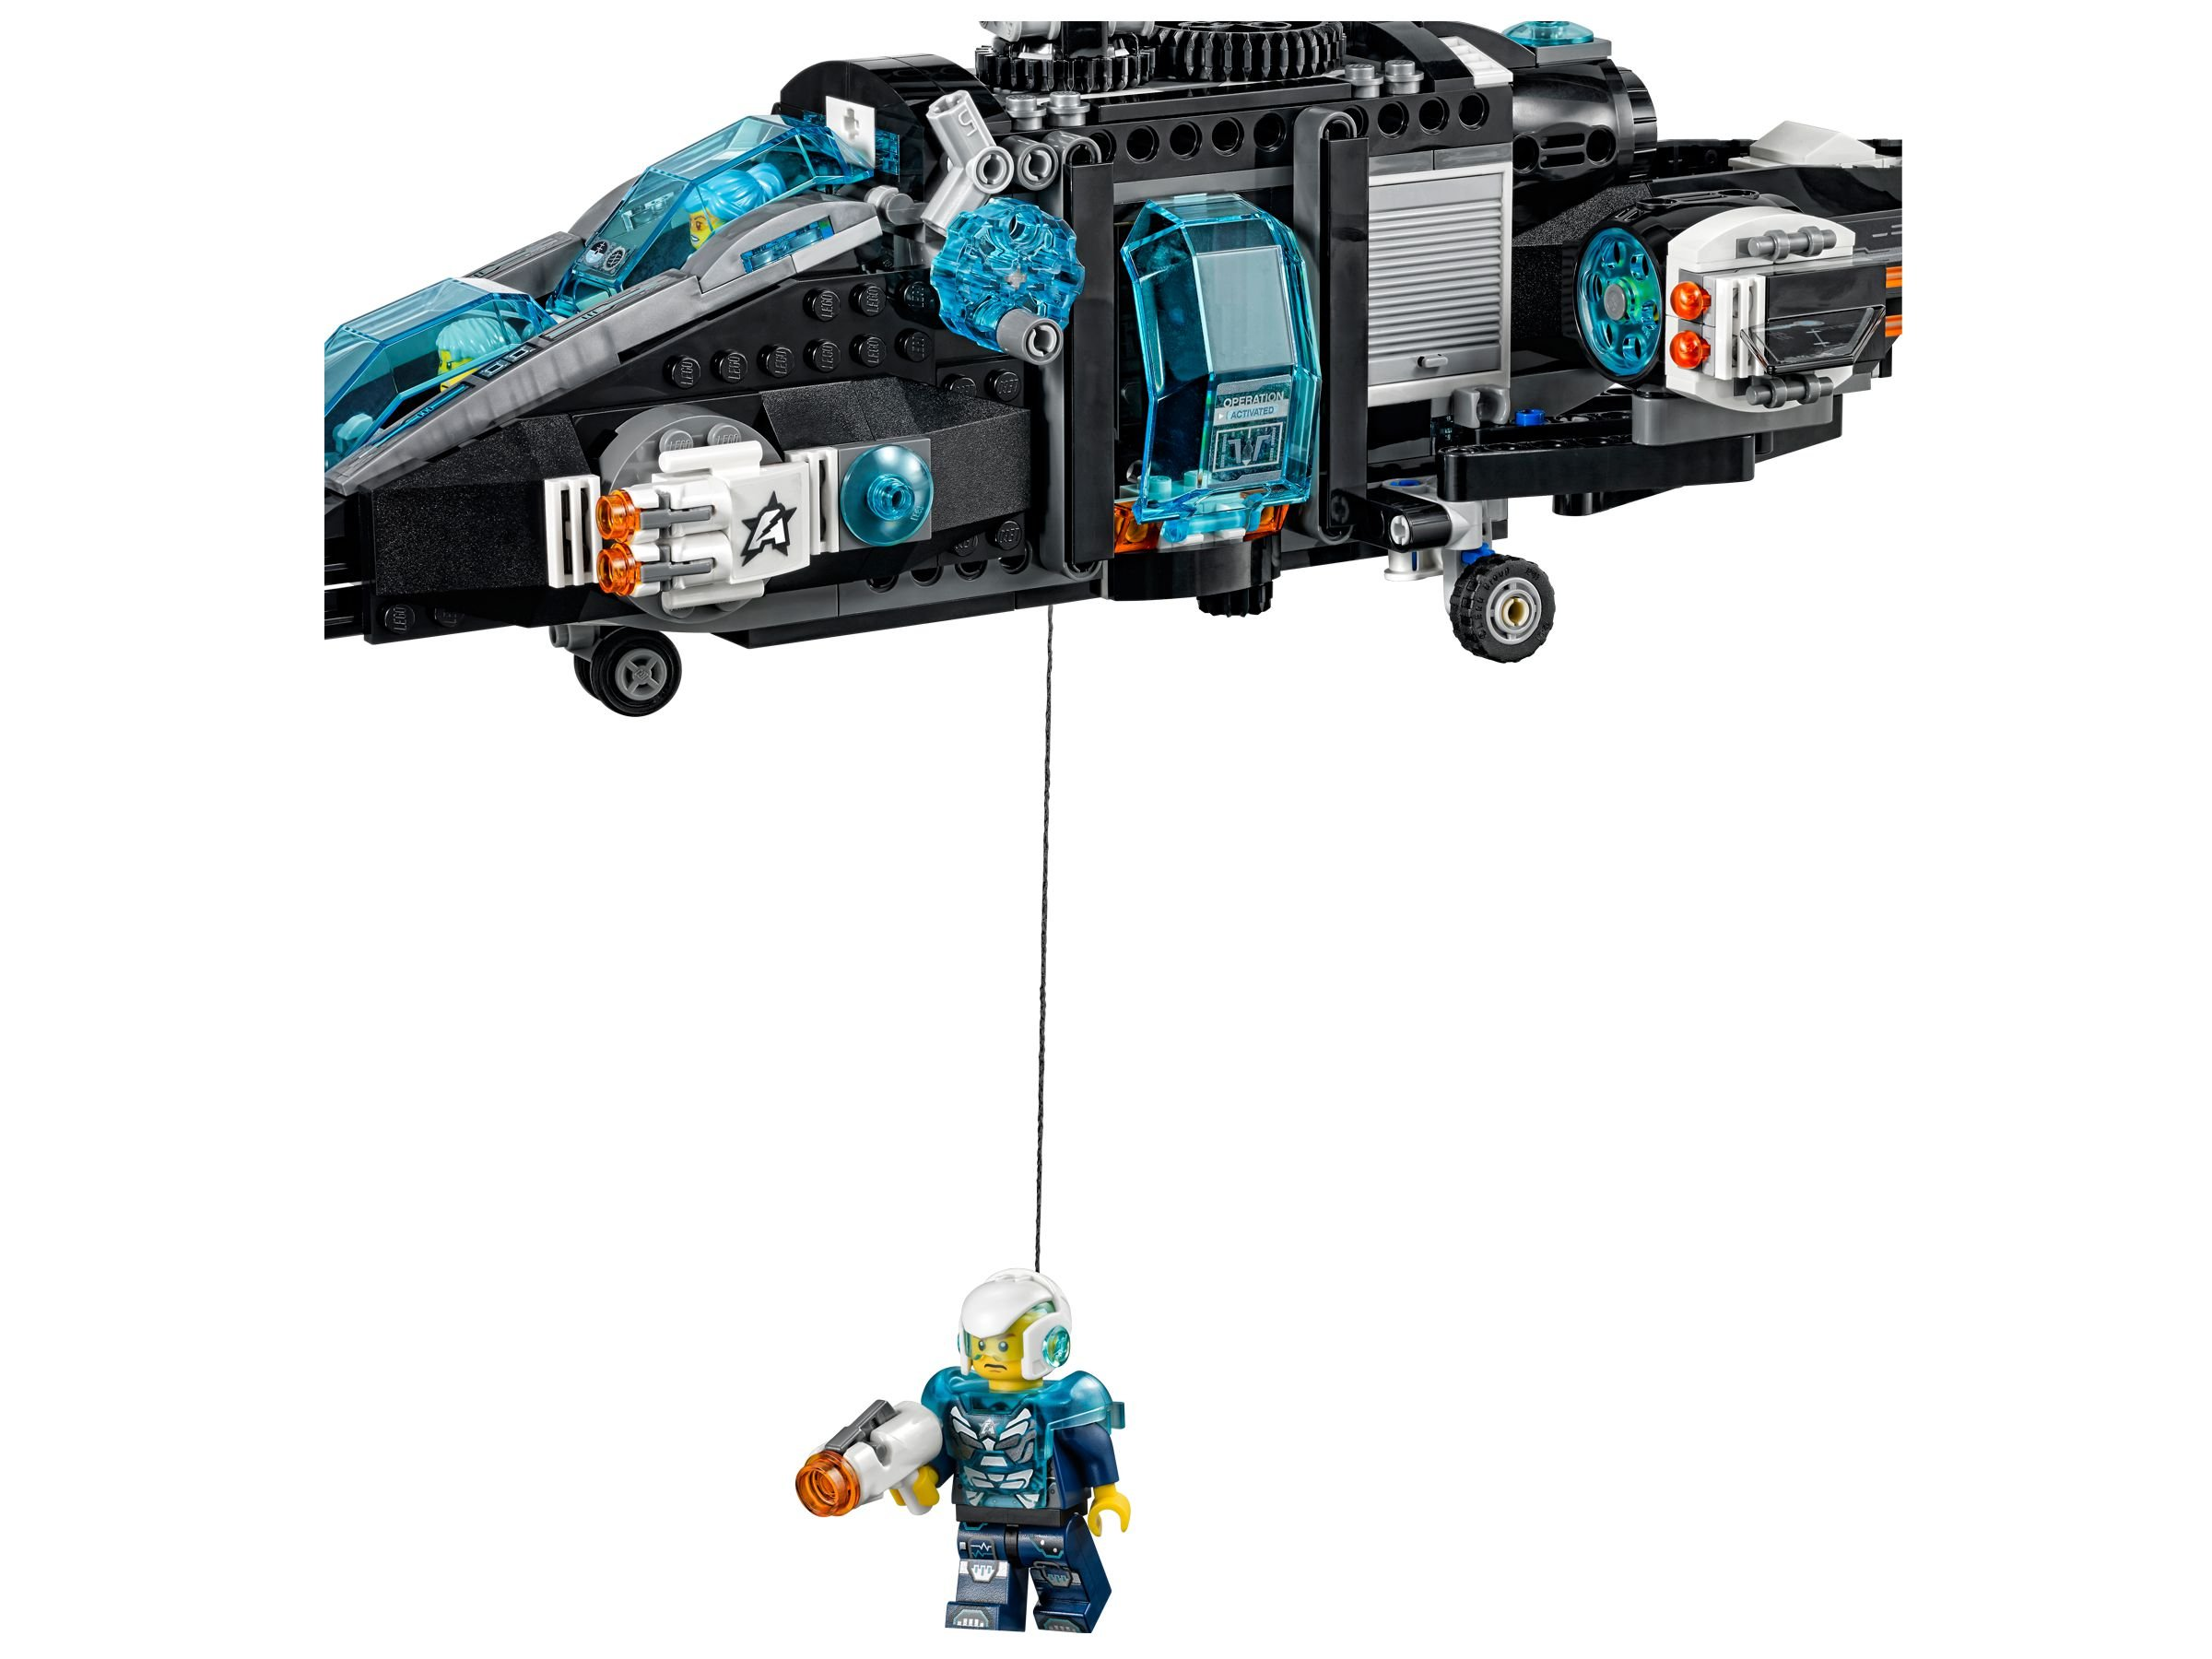 LEGO Agents 70170 UltraCopter vs. AntiMatter LEGO_70170_alt3.jpg